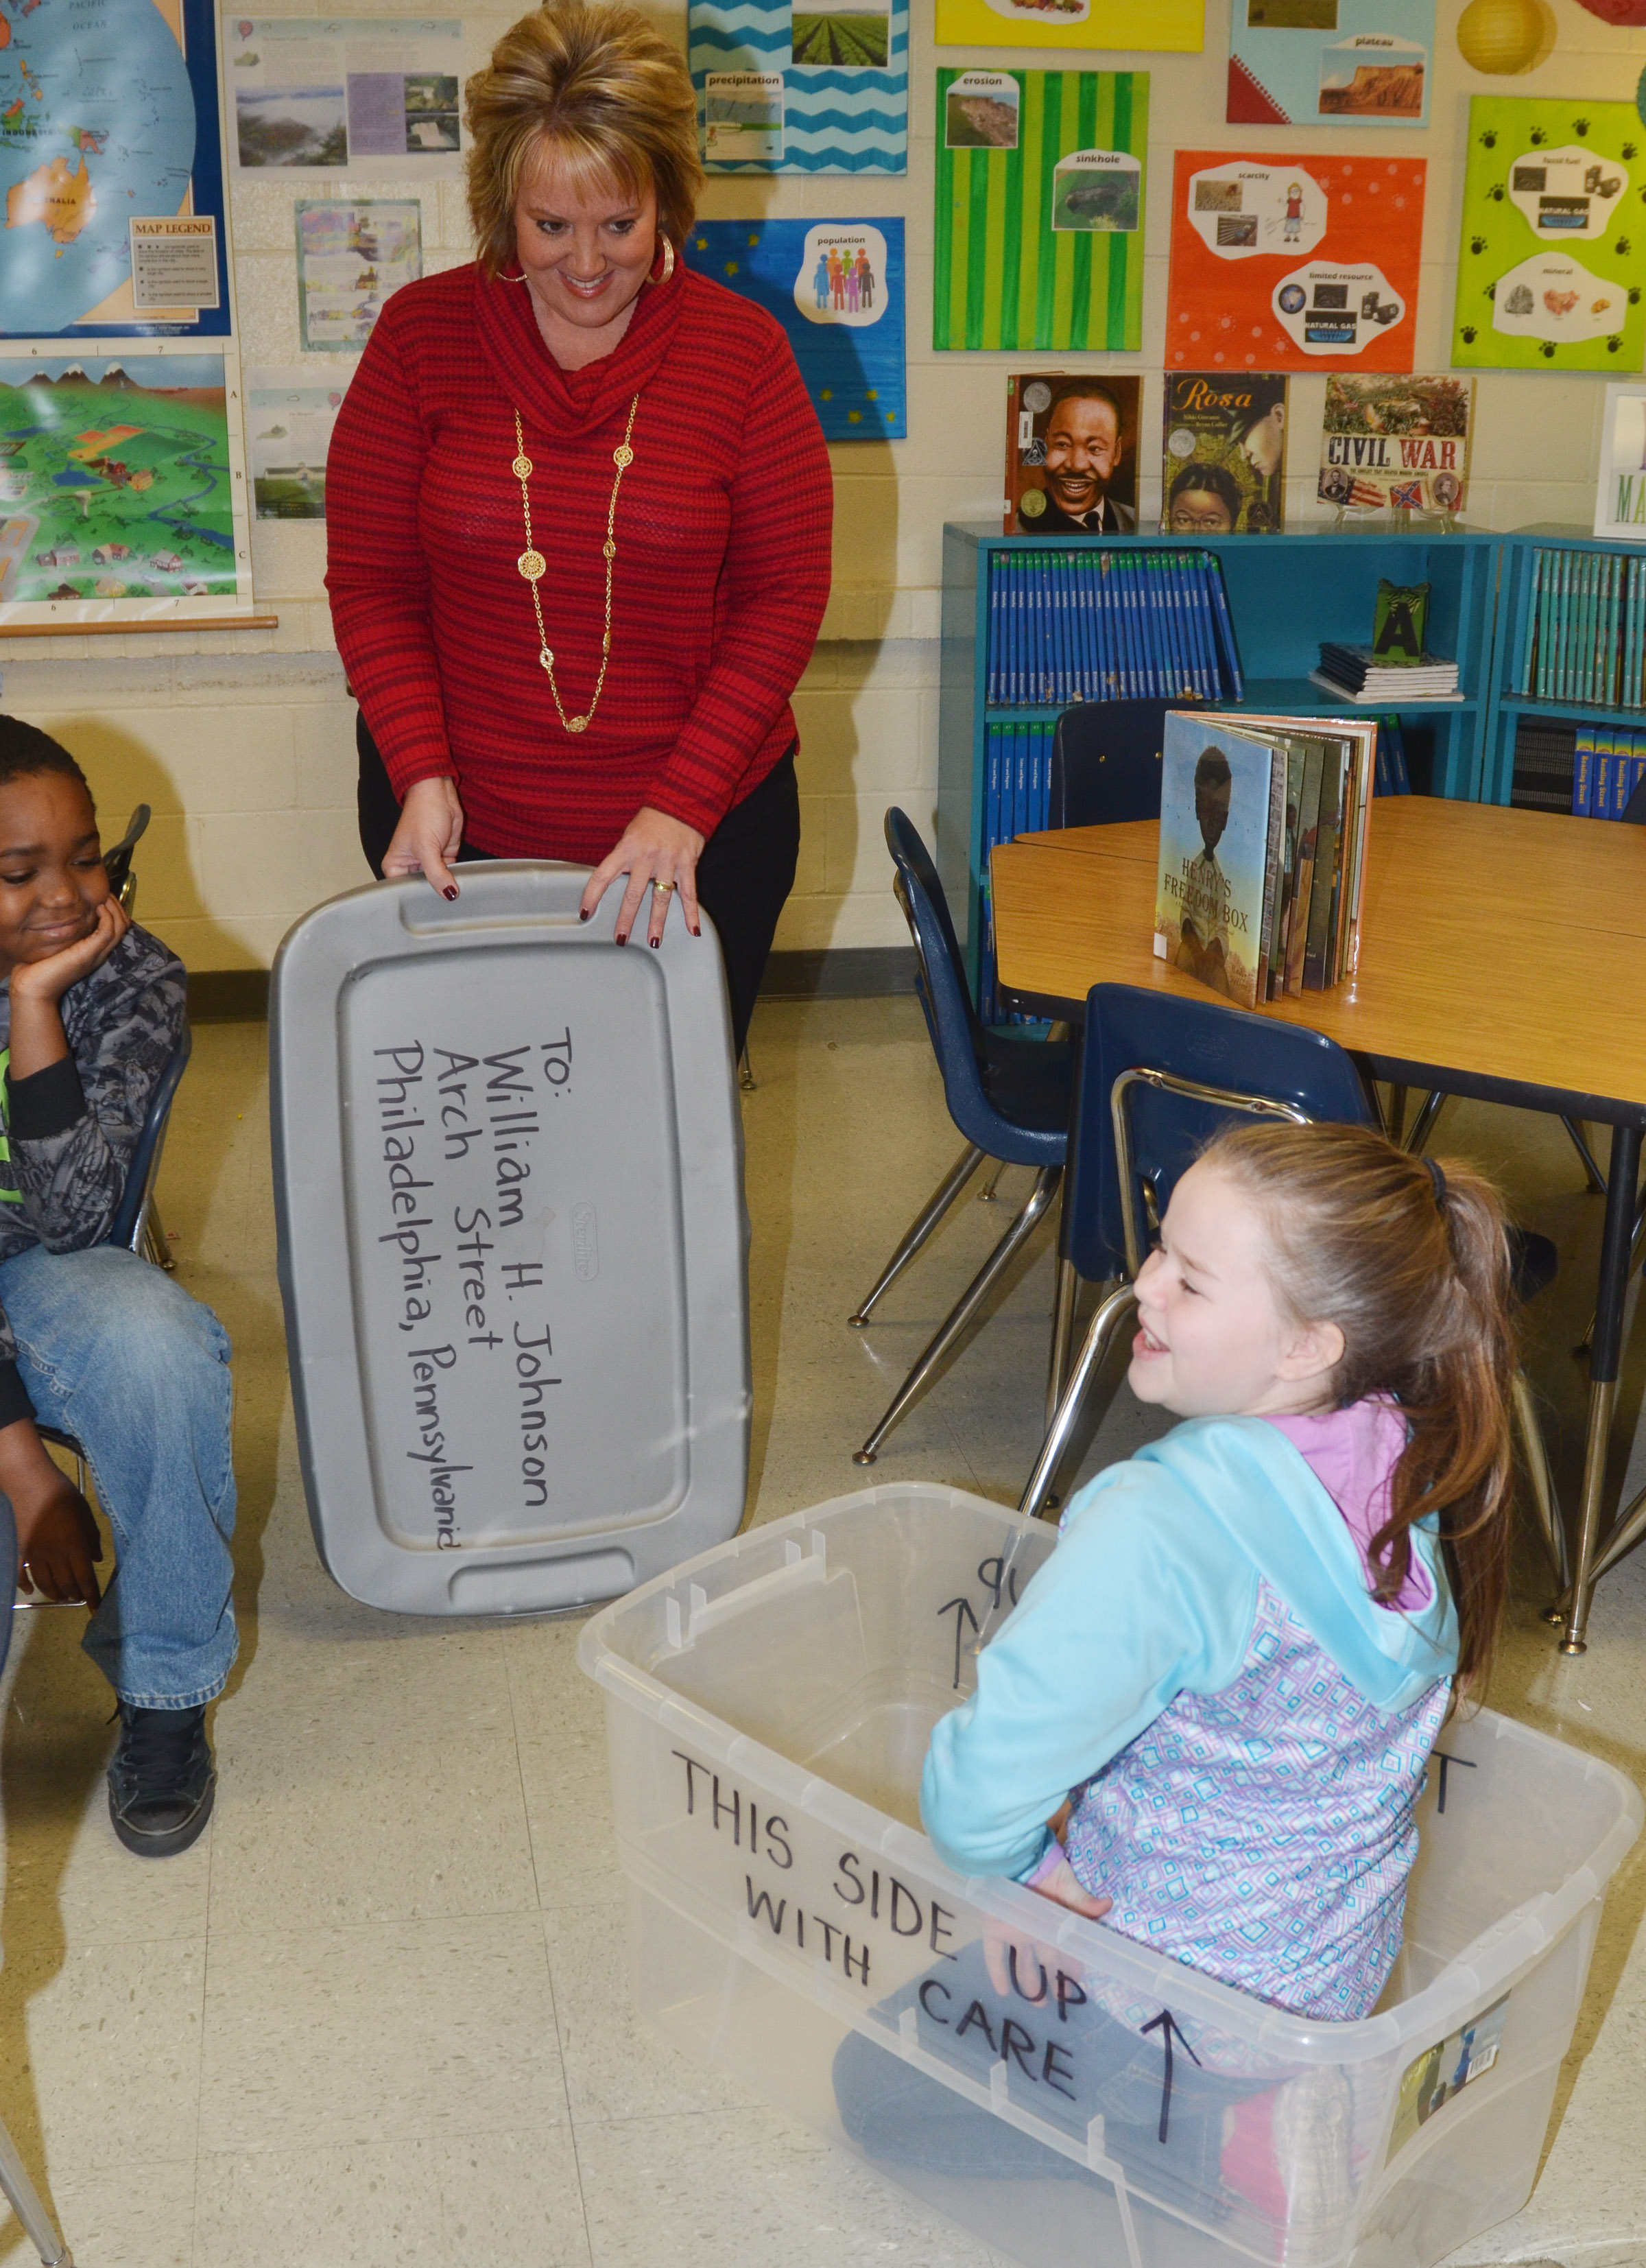 CMS fourth-grader Miley Hash laughs as she tries to fit inside a box like the one Henry Brown used to mail himself to freedom, as social studies teacher Kaye Agathen watches.